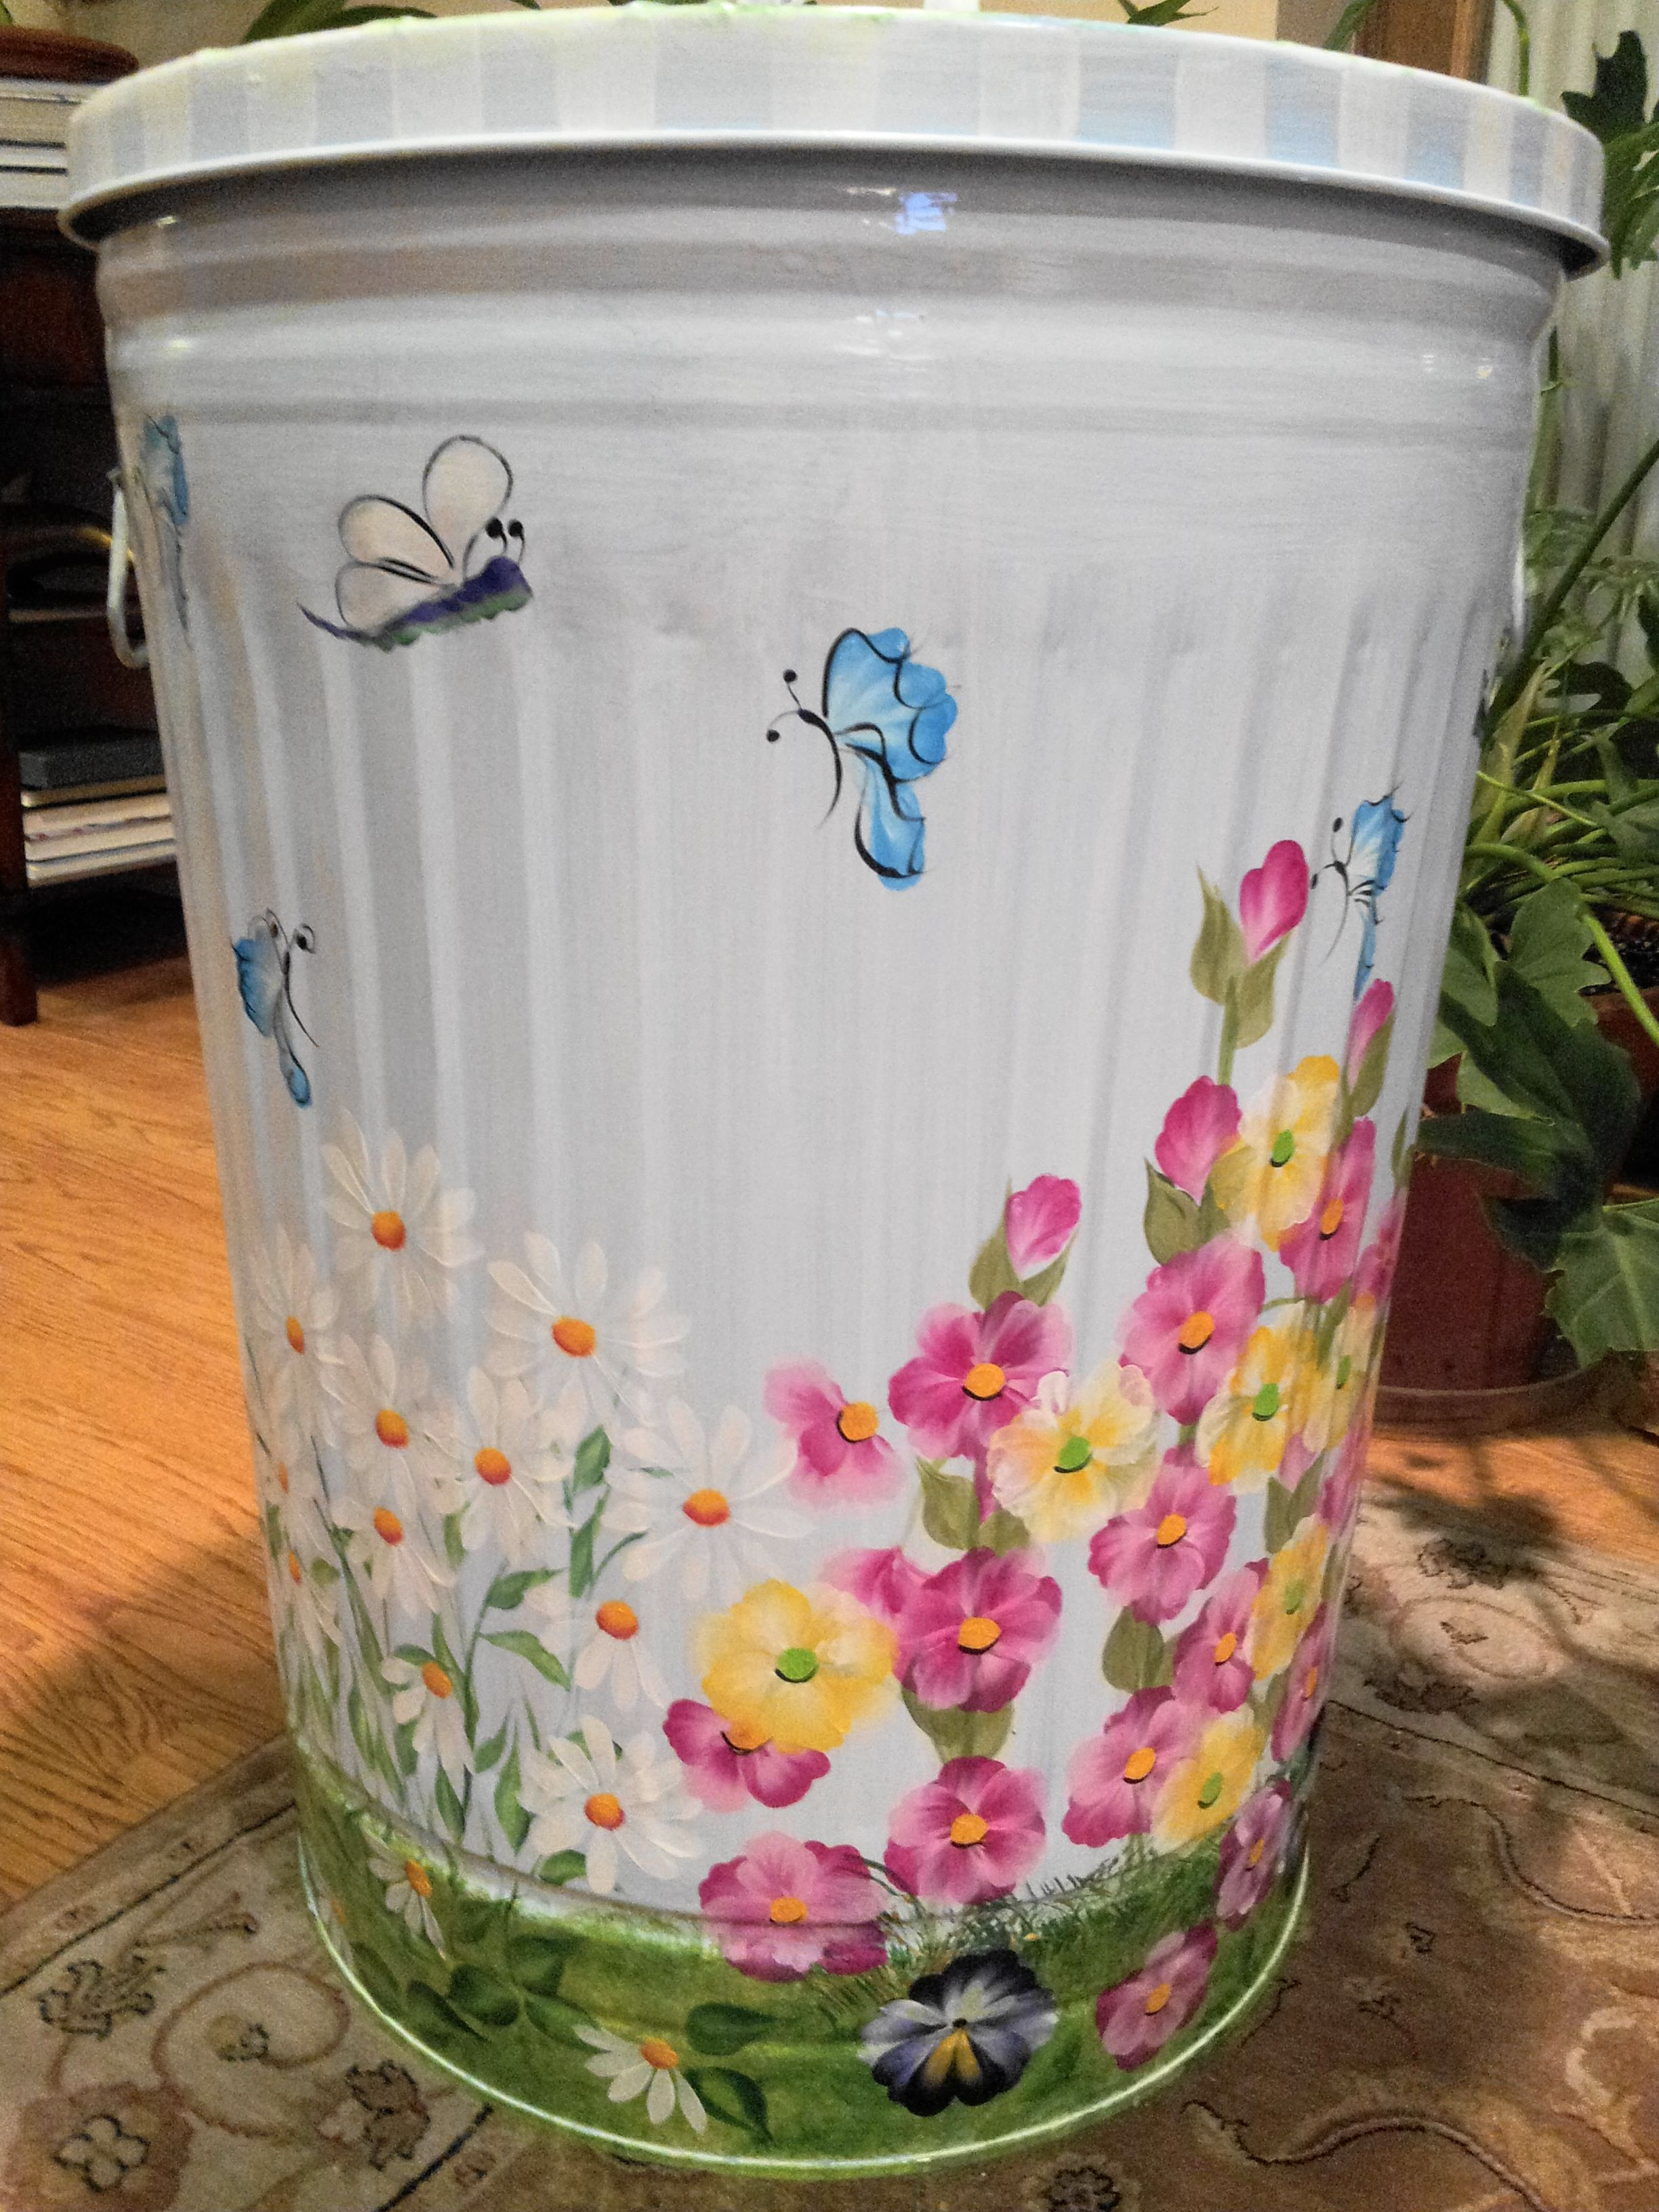 30 Gallon Hand Painted Trash Can Painted Trash Cans Painting Plastic Painted Mailboxes